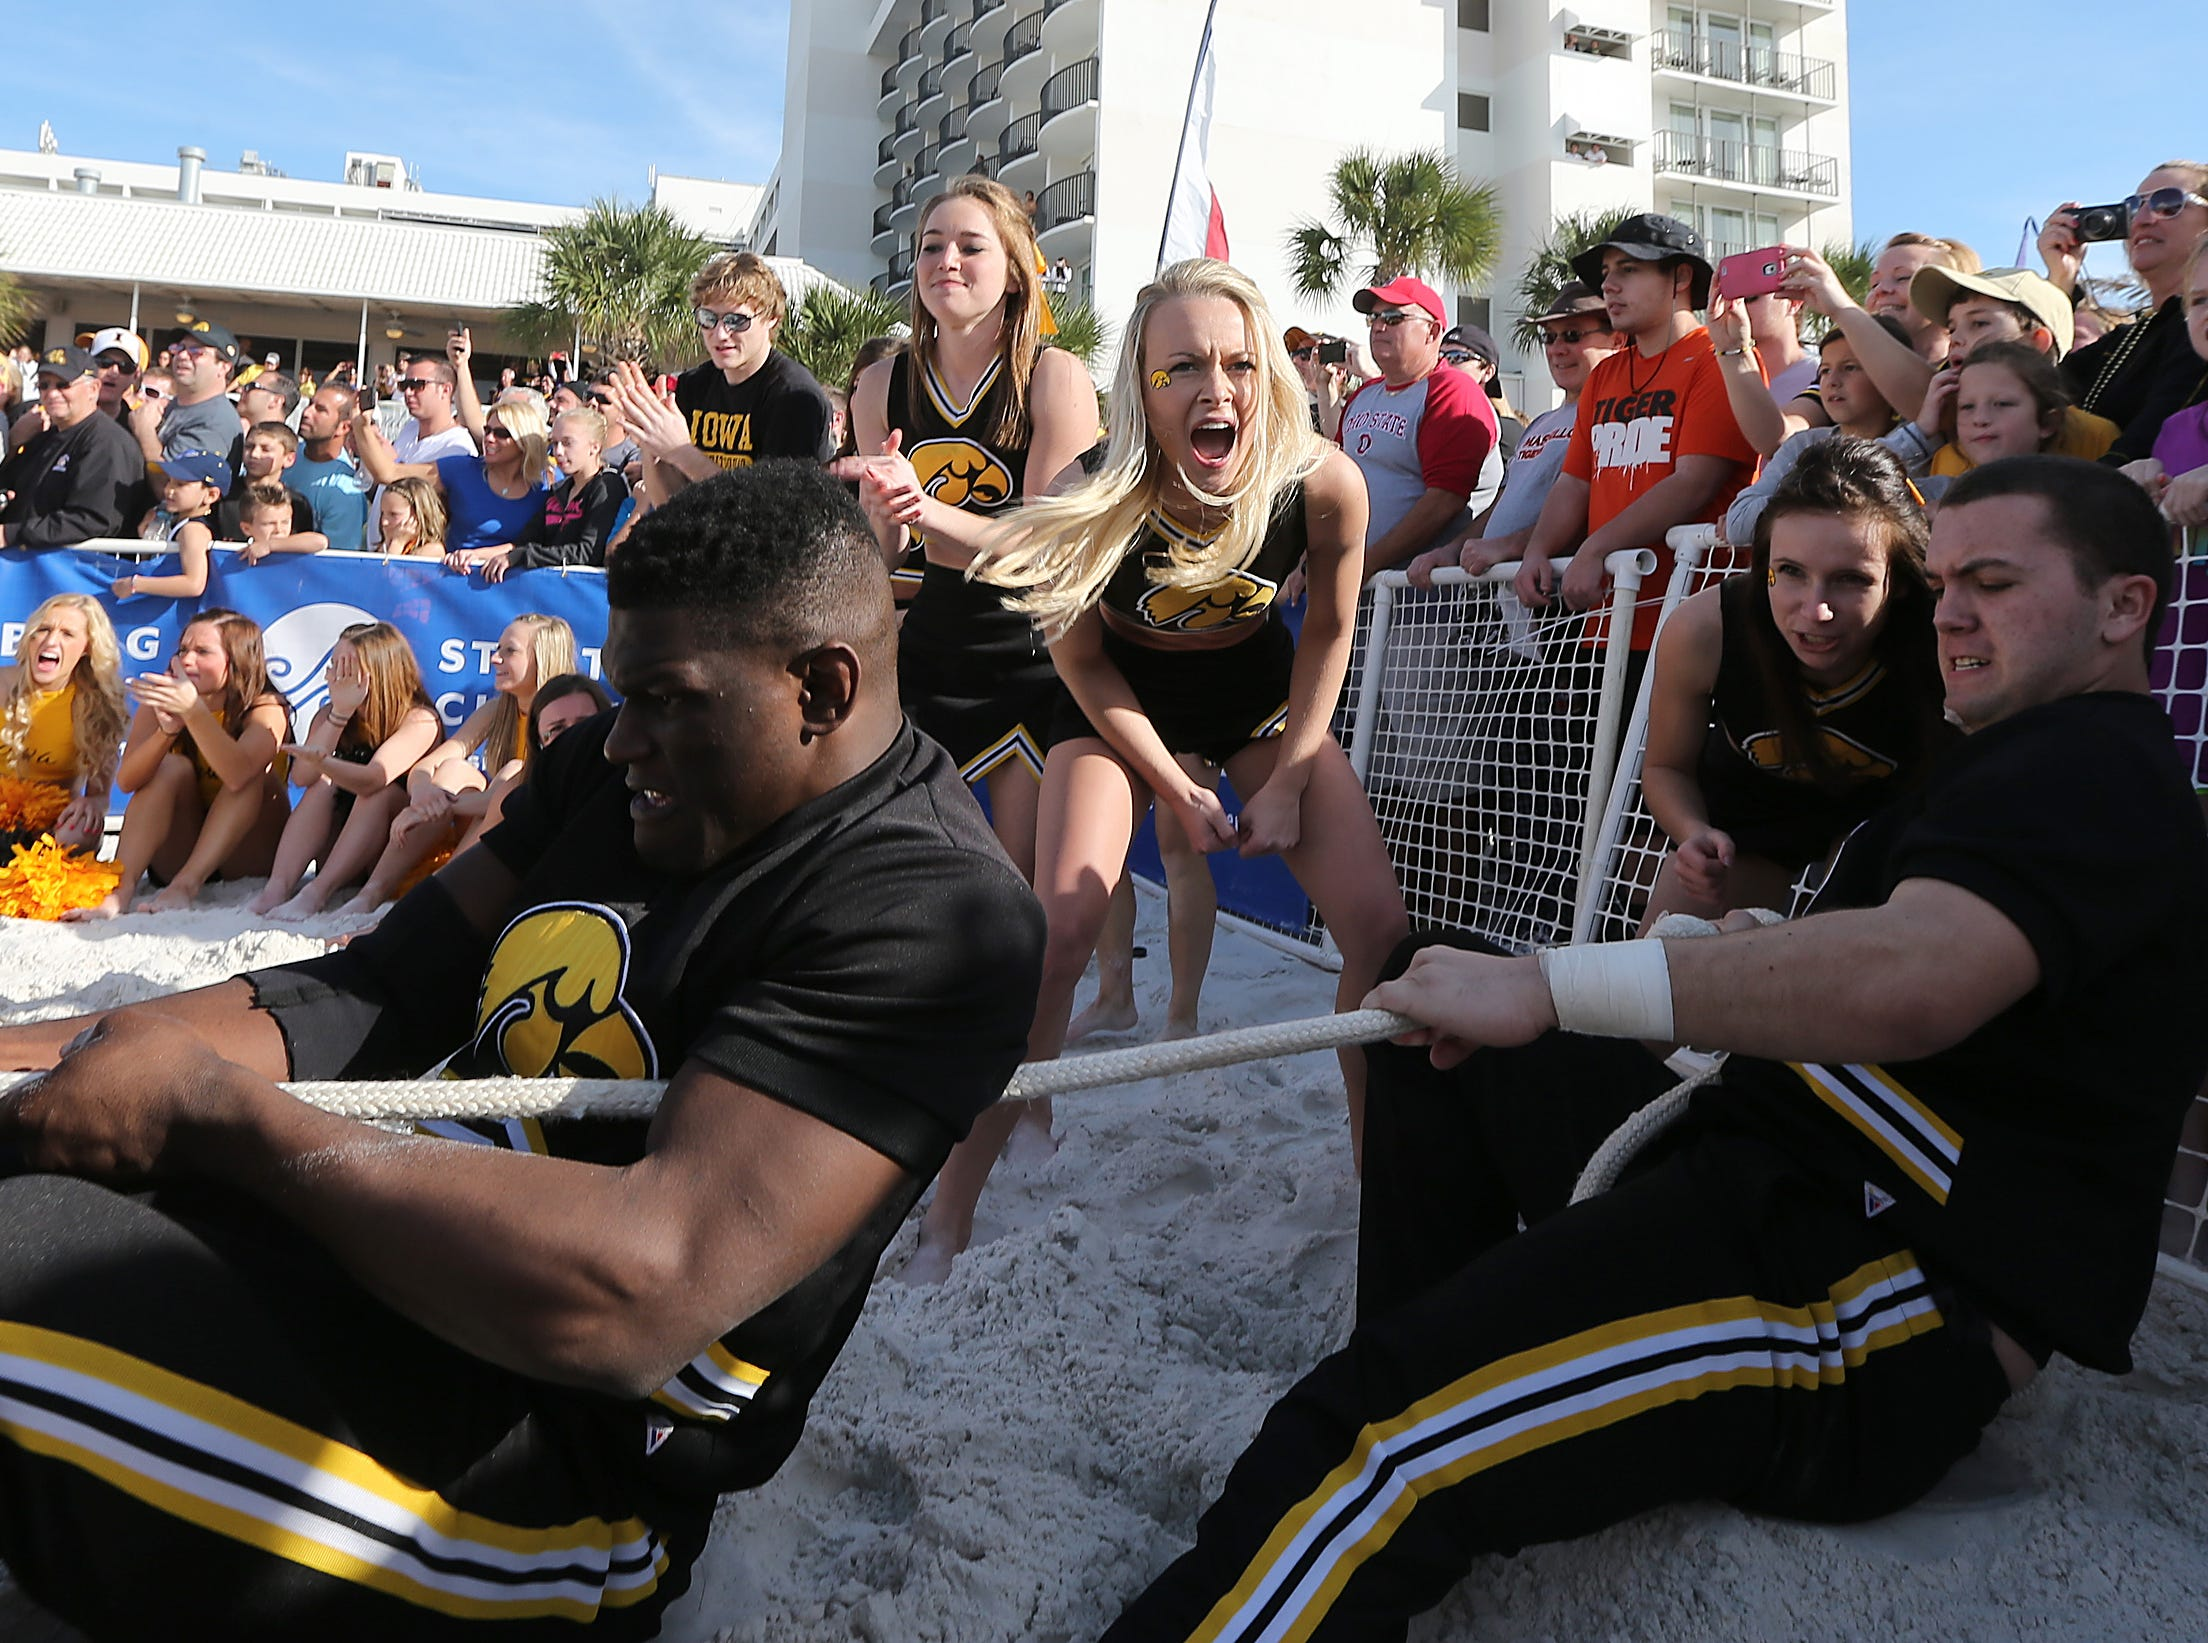 The guys on the Iowa cheerleading team get some encouragement from the girls as they battle LSU's men in a tug-of-war on Monday, Dec. 30, 2013, in Clearwater, Florida. (Bryon Houlgrave/The Register)